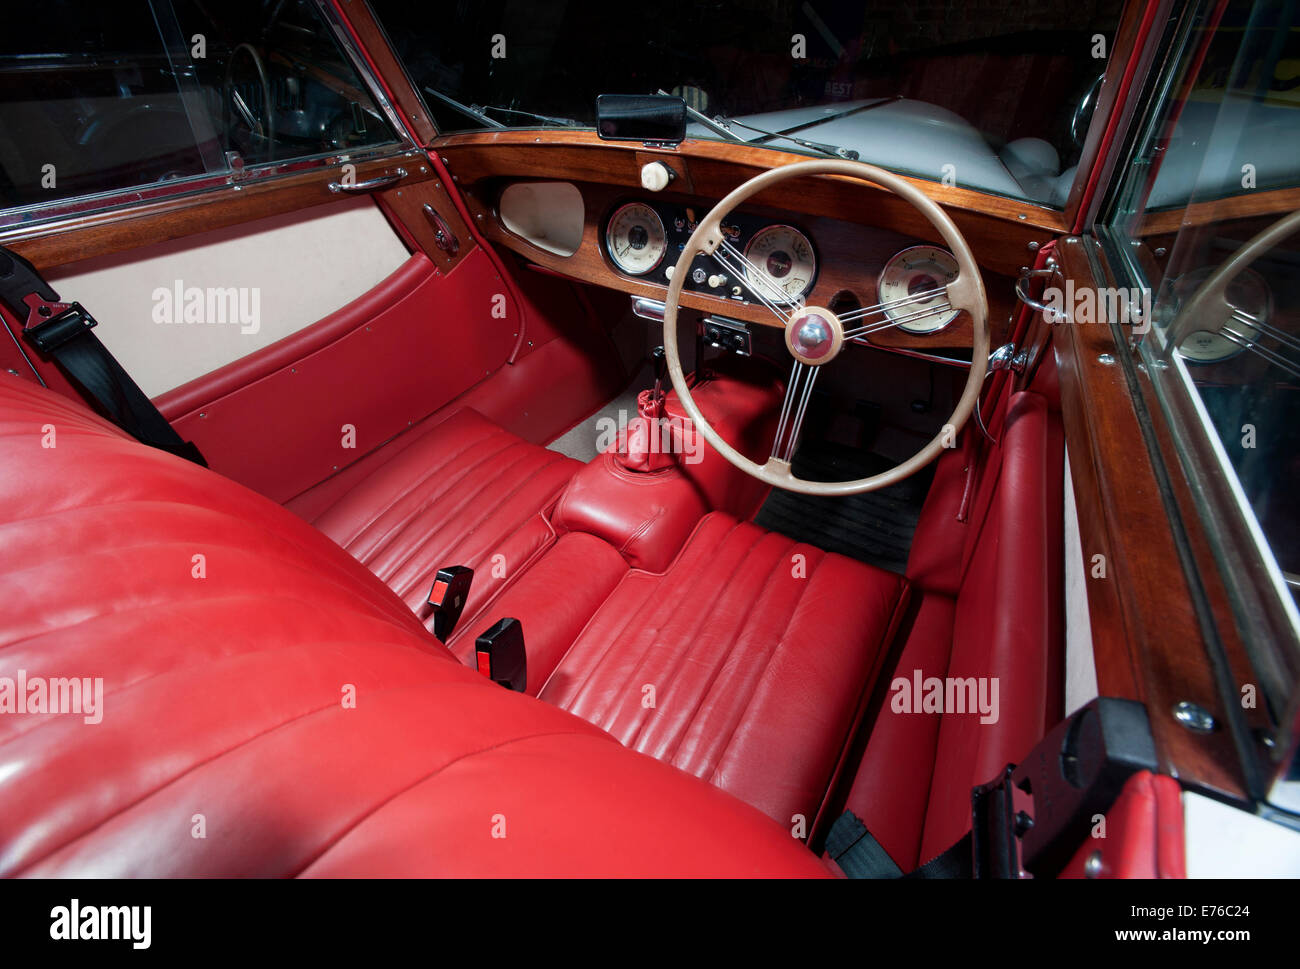 morgan plus 4 classic british sports car interior stock photo royalty free image 73285244 alamy. Black Bedroom Furniture Sets. Home Design Ideas